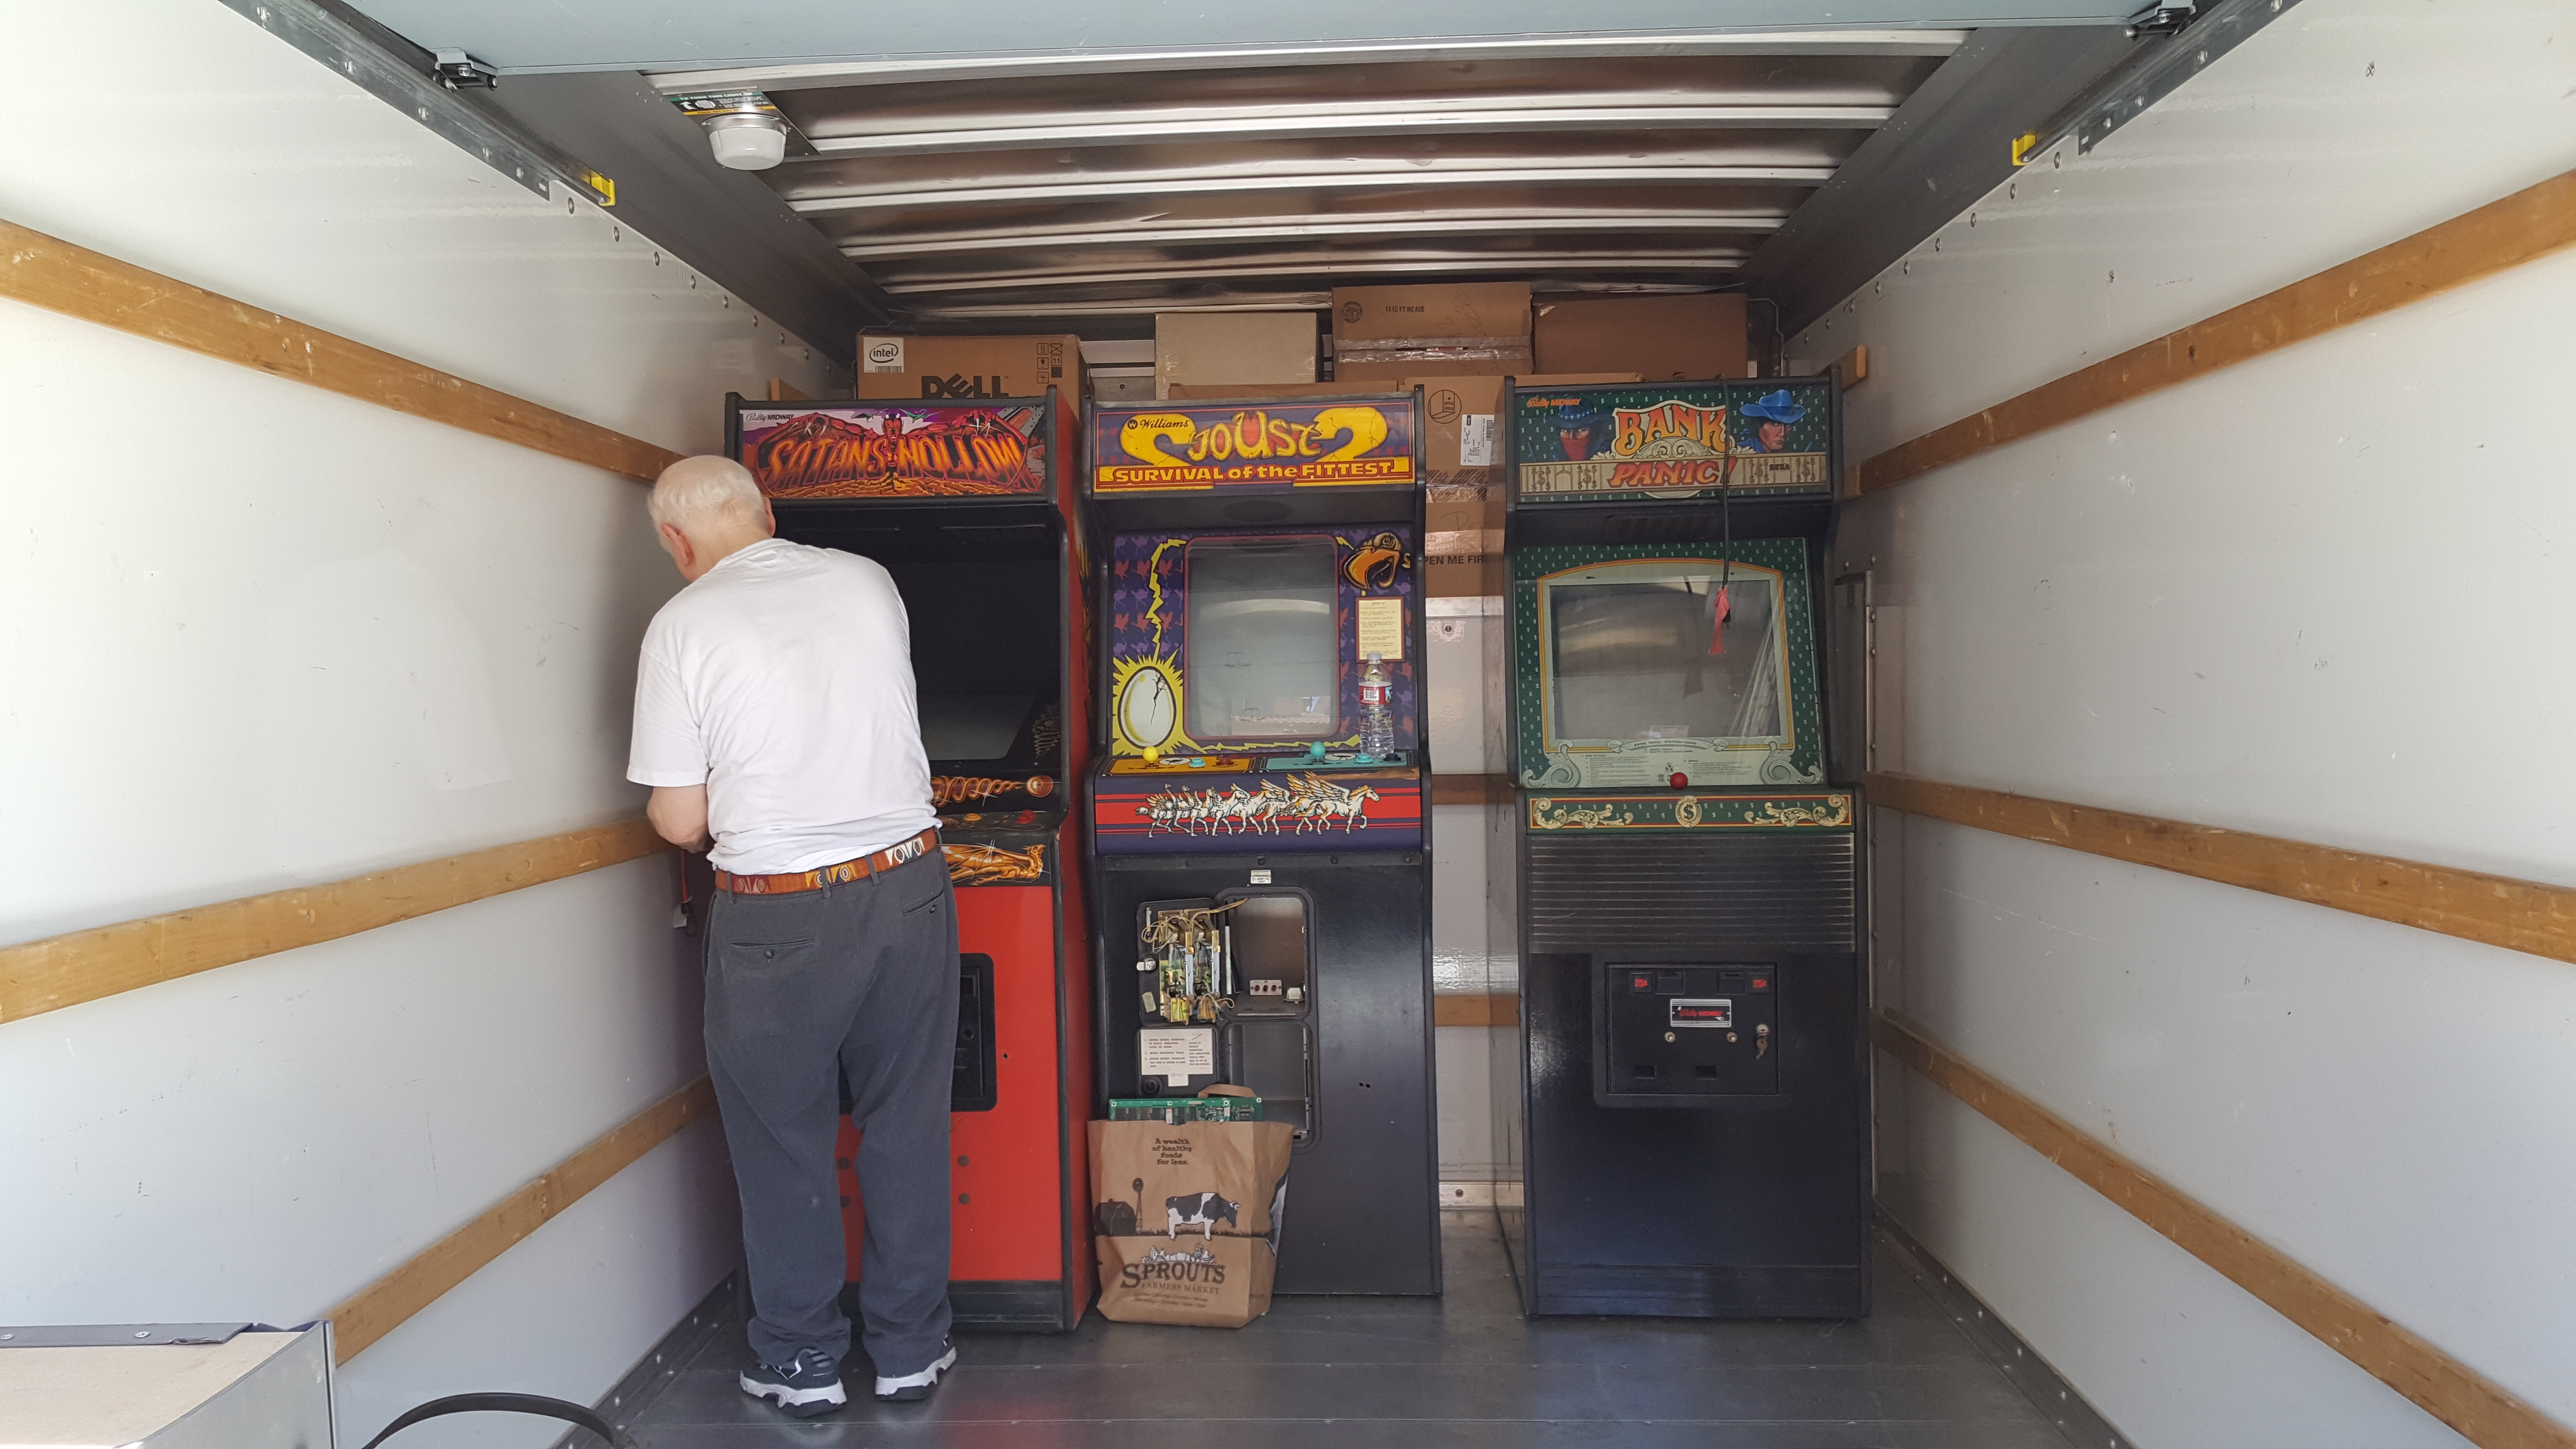 Some boxes, my dad, and the arcade machines